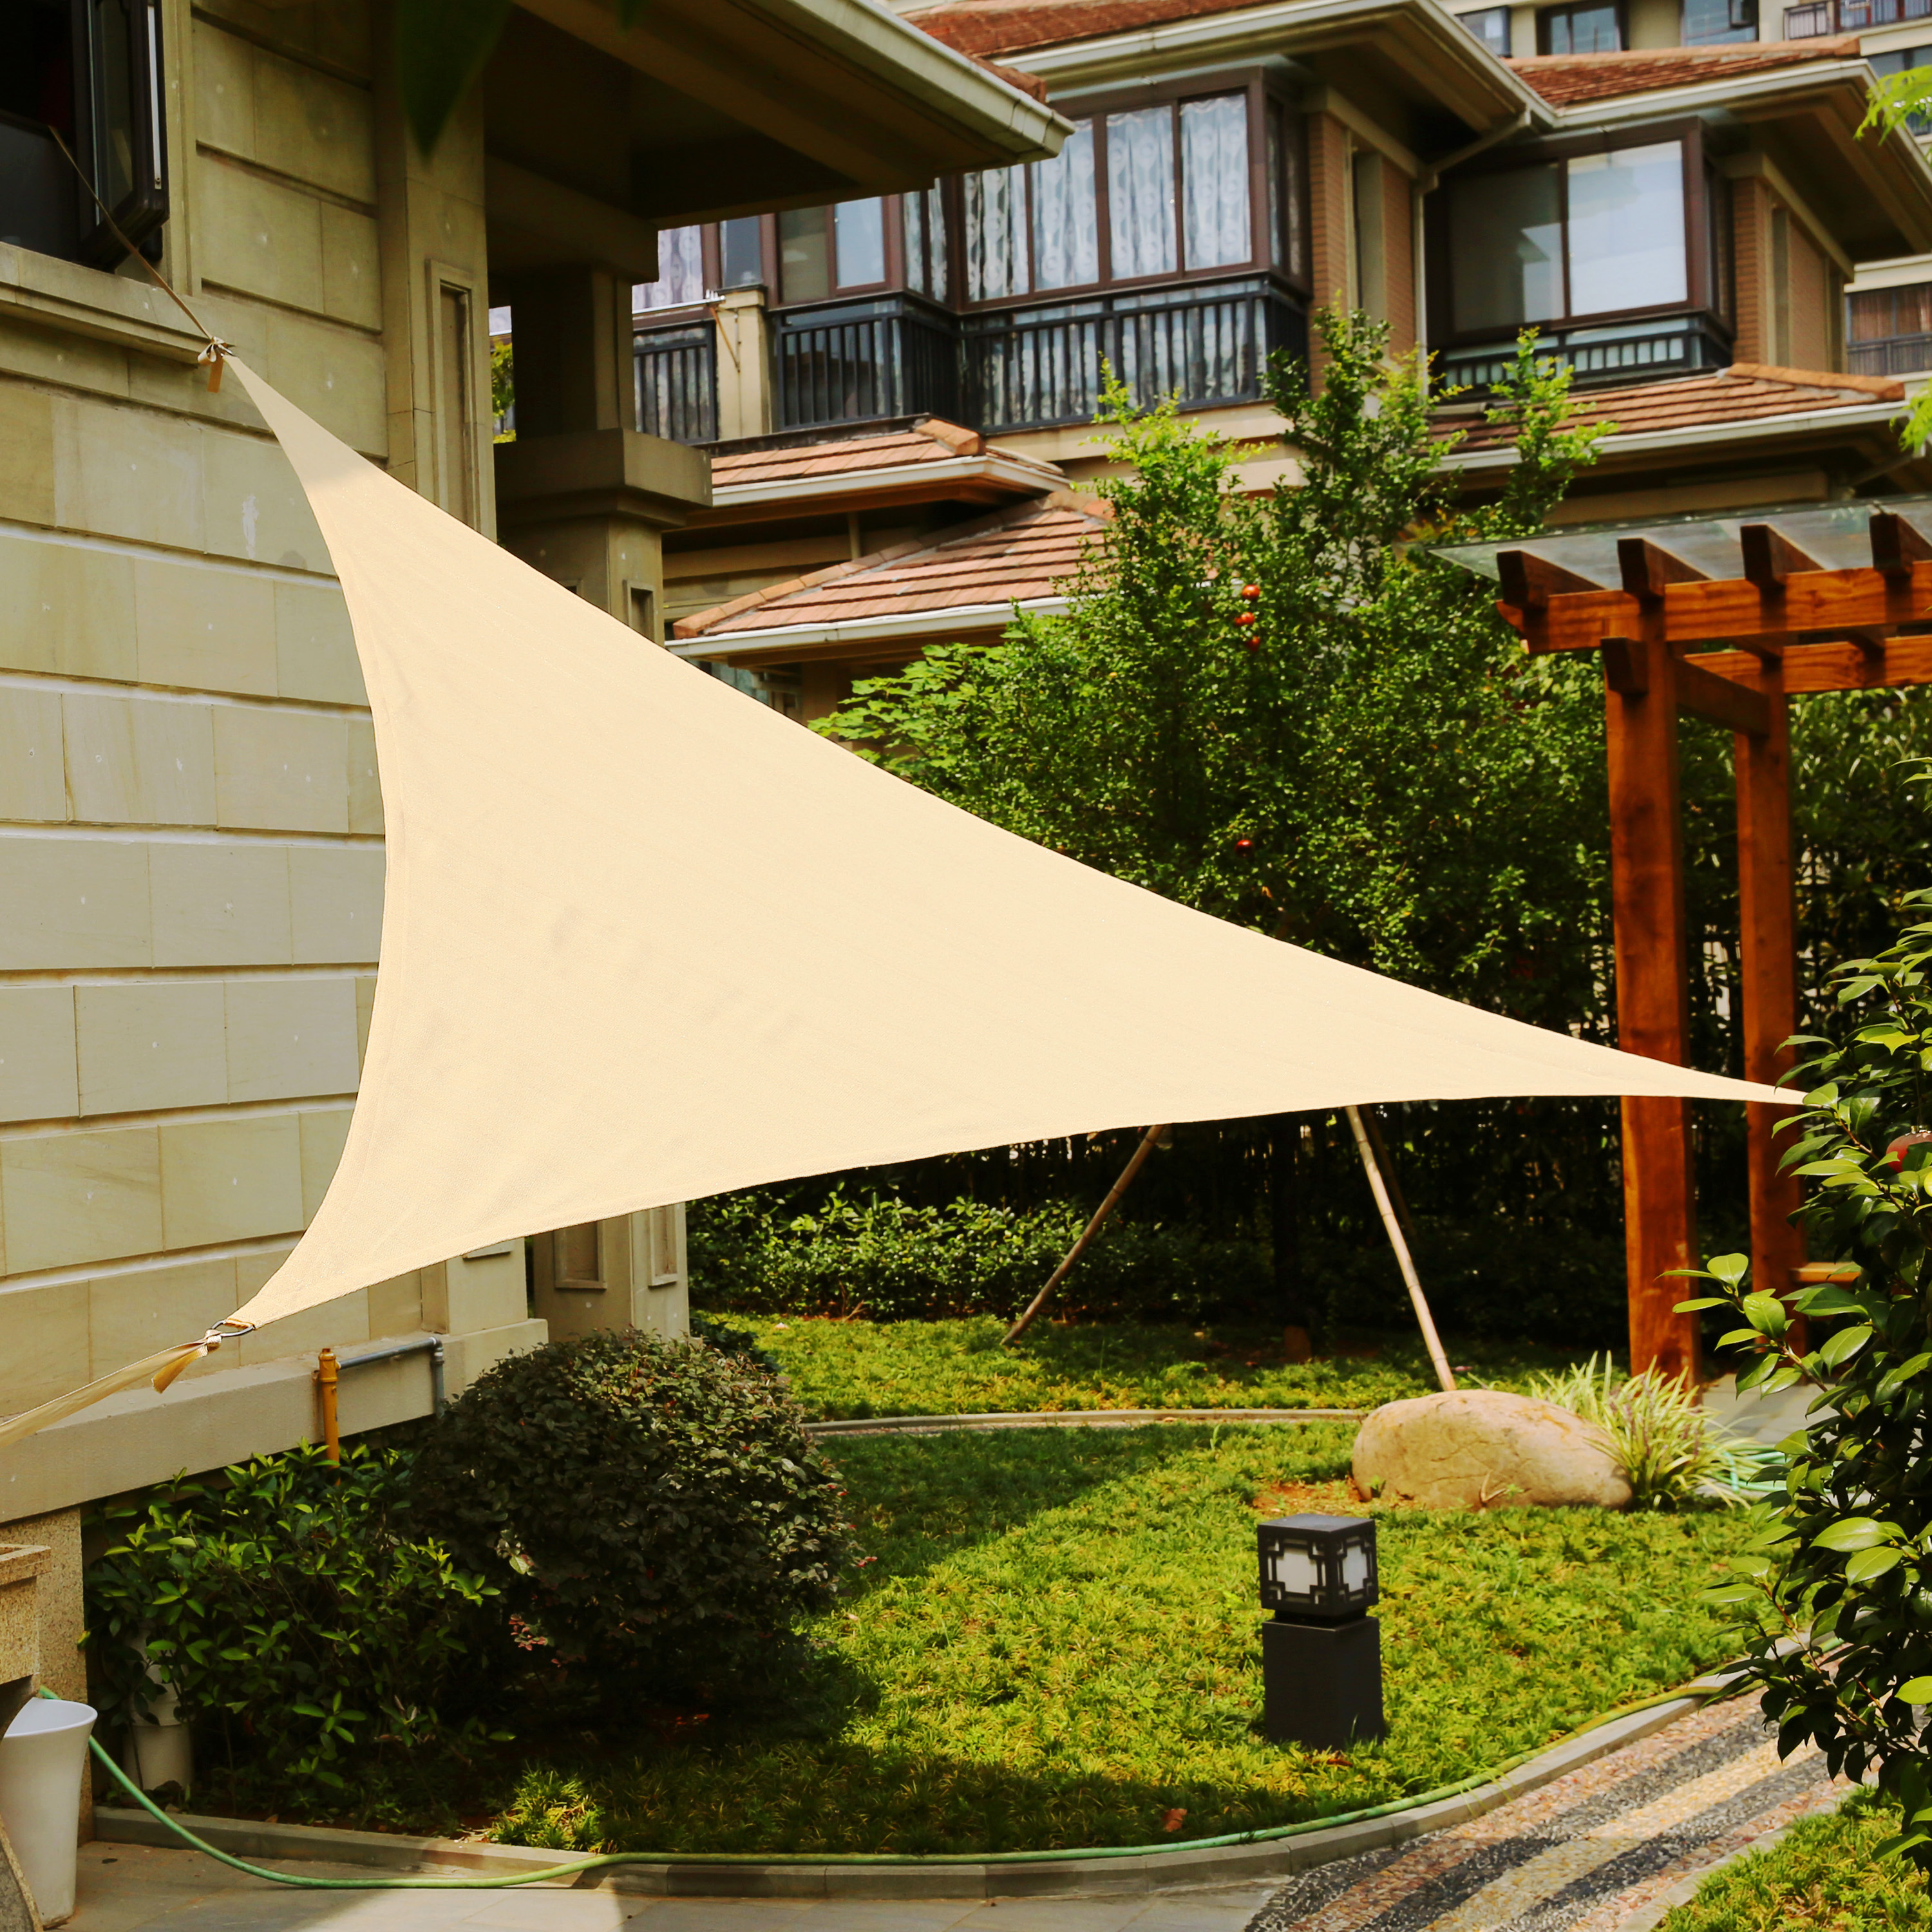 lyshade 12 39 triangle sun shade sail canopy uv block patio lawn outdoor ebay. Black Bedroom Furniture Sets. Home Design Ideas